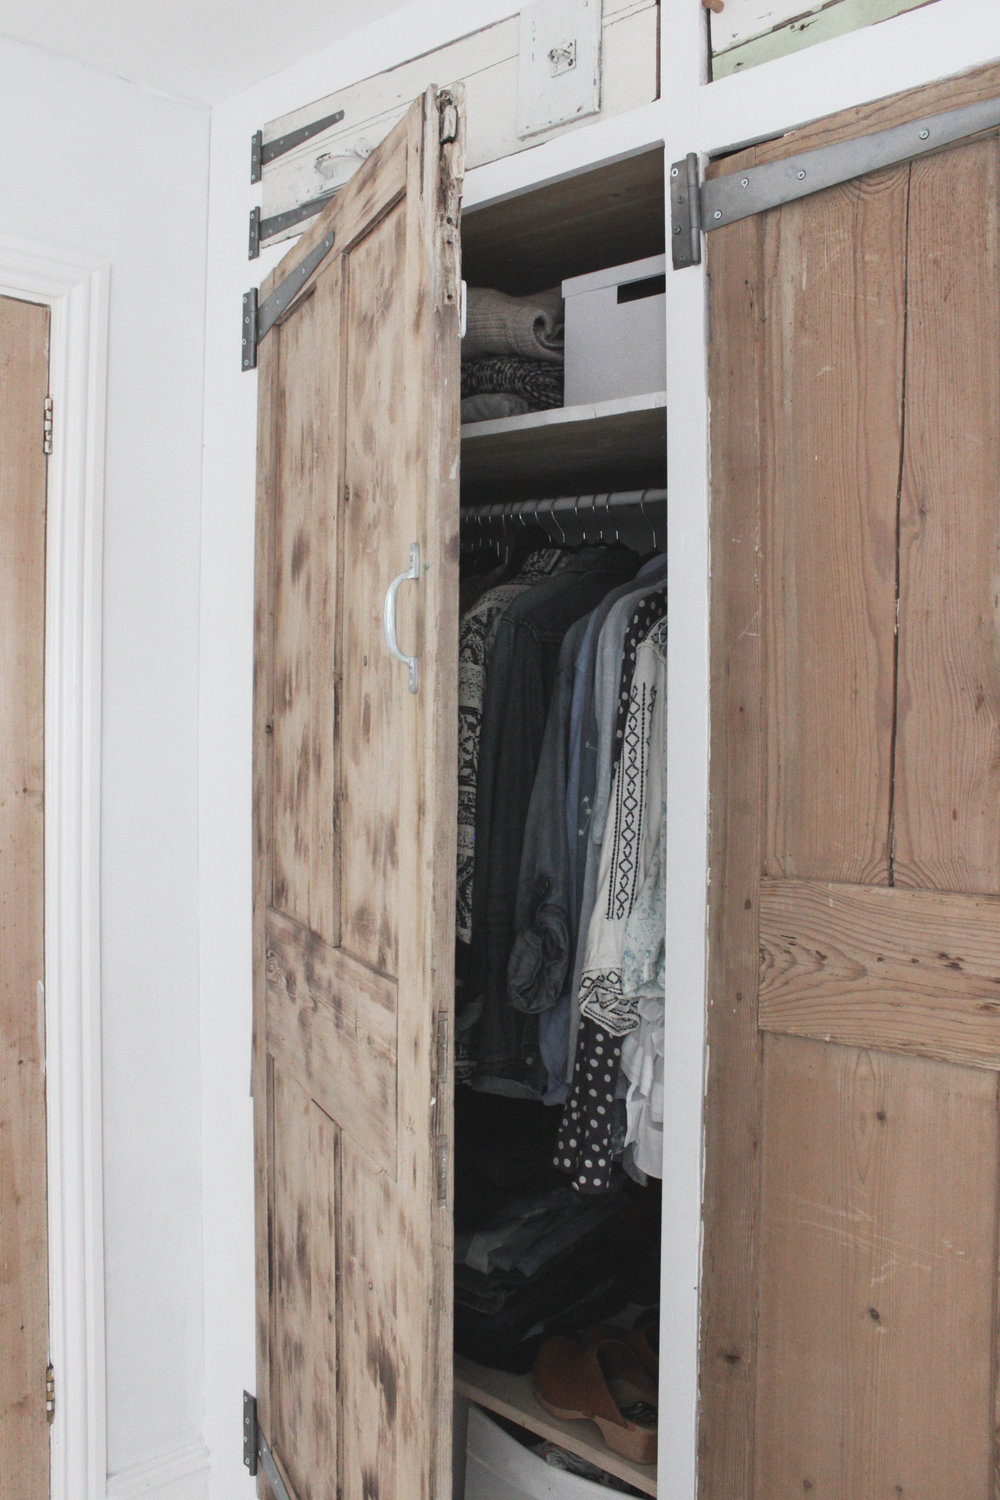 Build a faux build in wardrobe using reclaimed doors and an Ikea Ivar frame tutorial & The big wardrobe build using reclaimed doors part 2 \u2014 Hester\u0027s ... Pezcame.Com